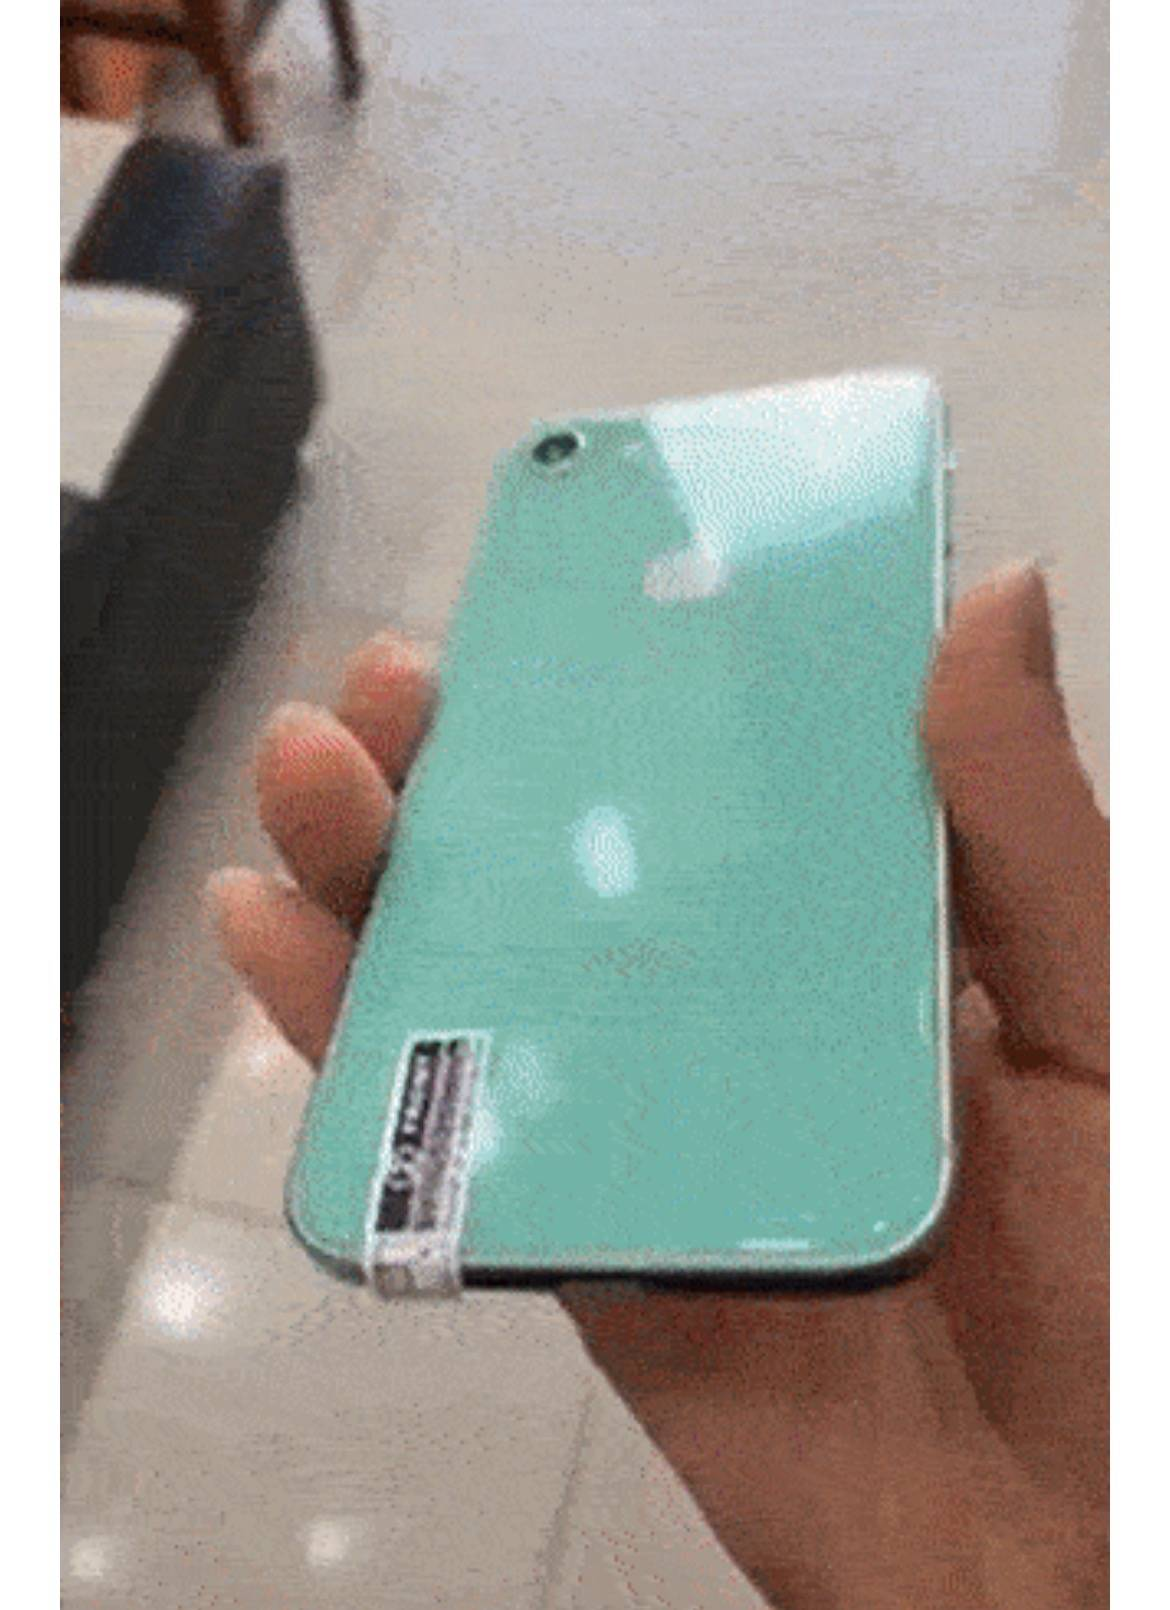 iPhone9工程机流落民间,网友,妥妥的iPhone8了